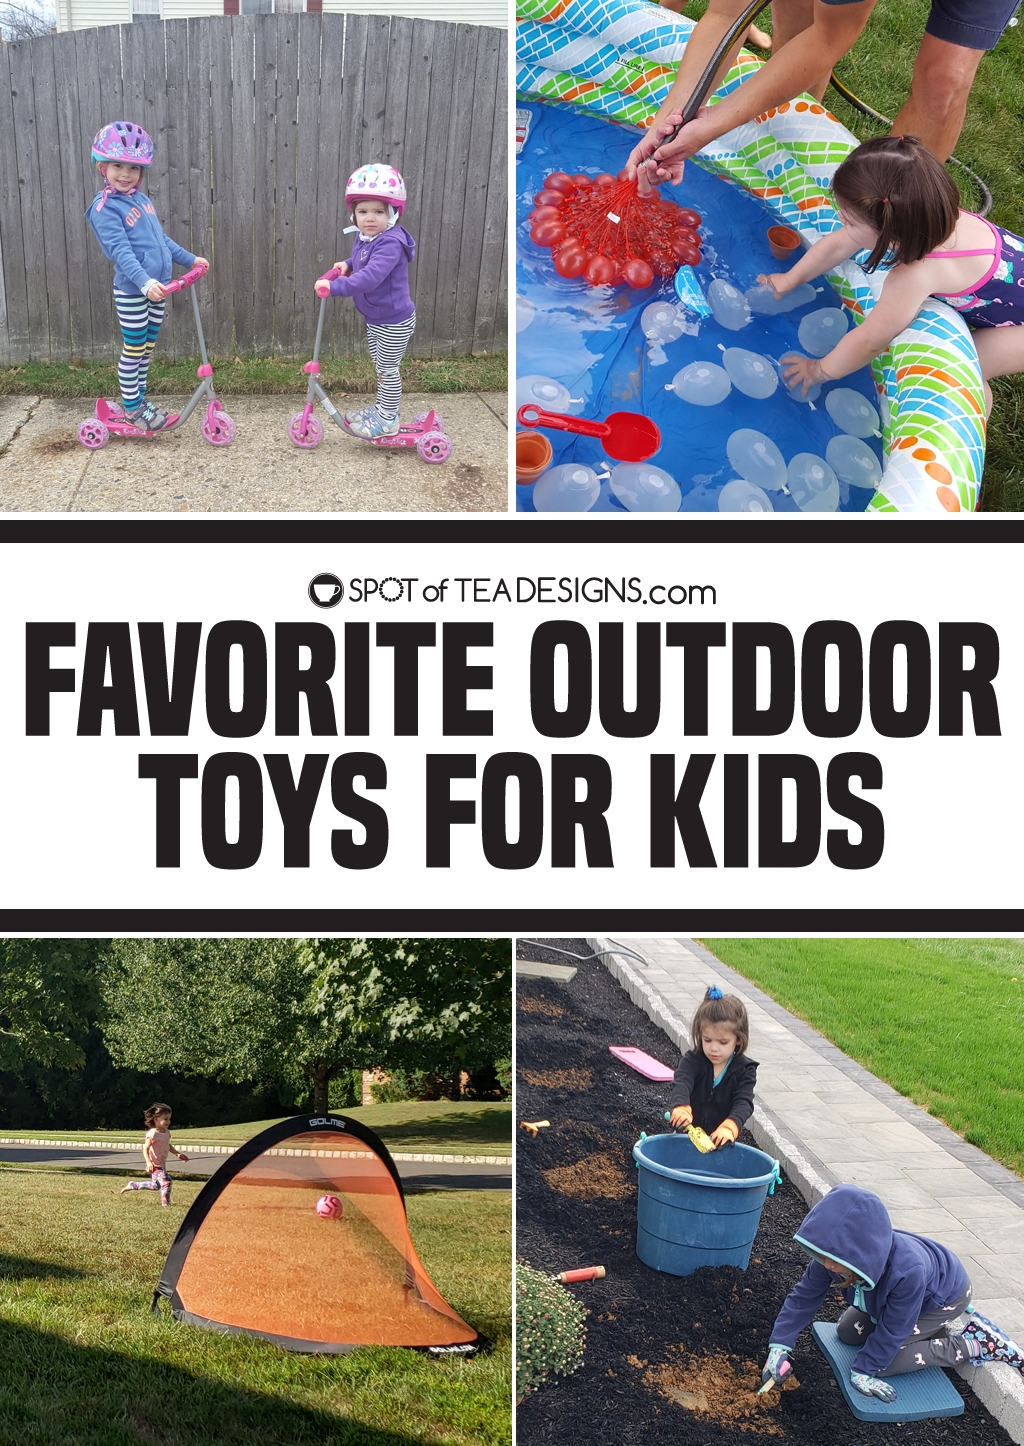 Favorite outdoor toys for kids | spotofteadesigns.com